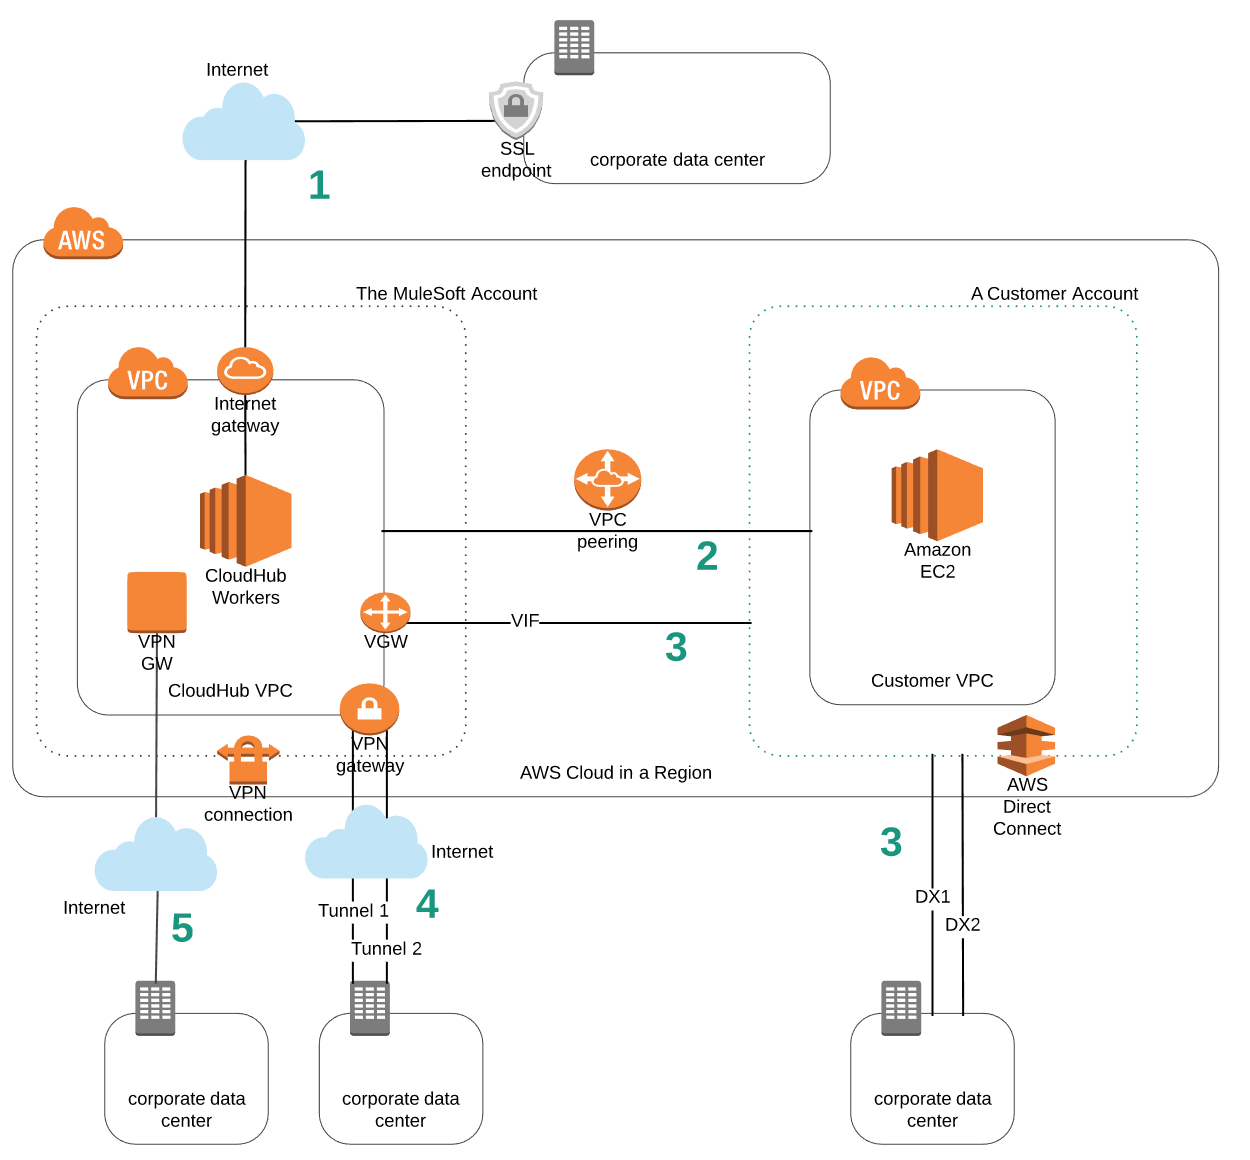 Aws Cloudhub: How To Connect To A CloudHub VPC